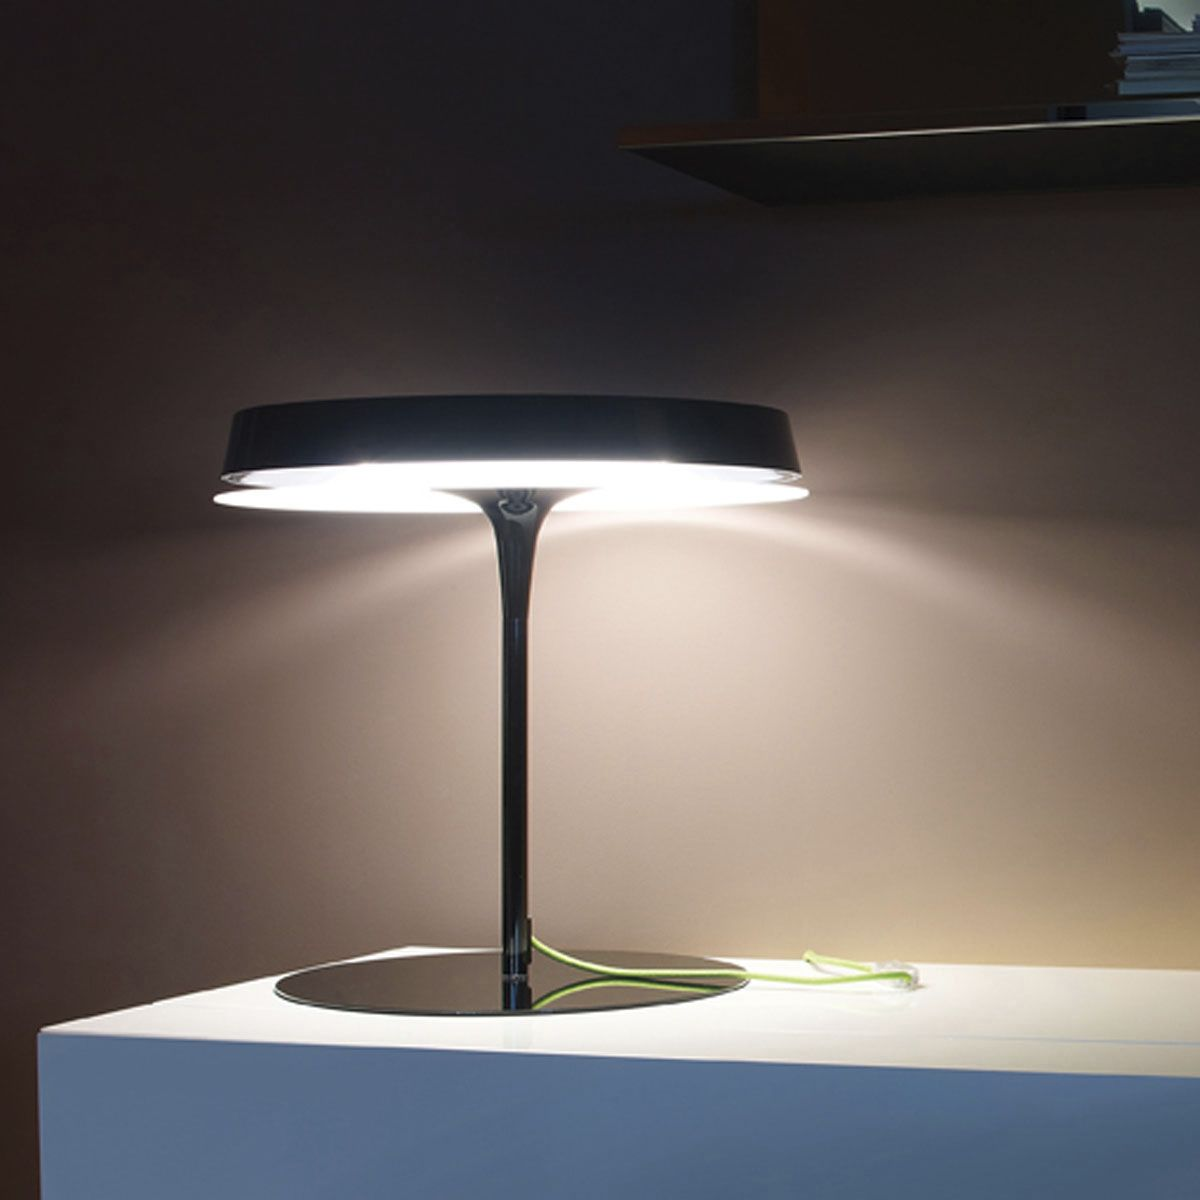 Marvelous-Study-Table-with-Modern-Table-Lamps-with-Black-Shade-also-Pipe-Style